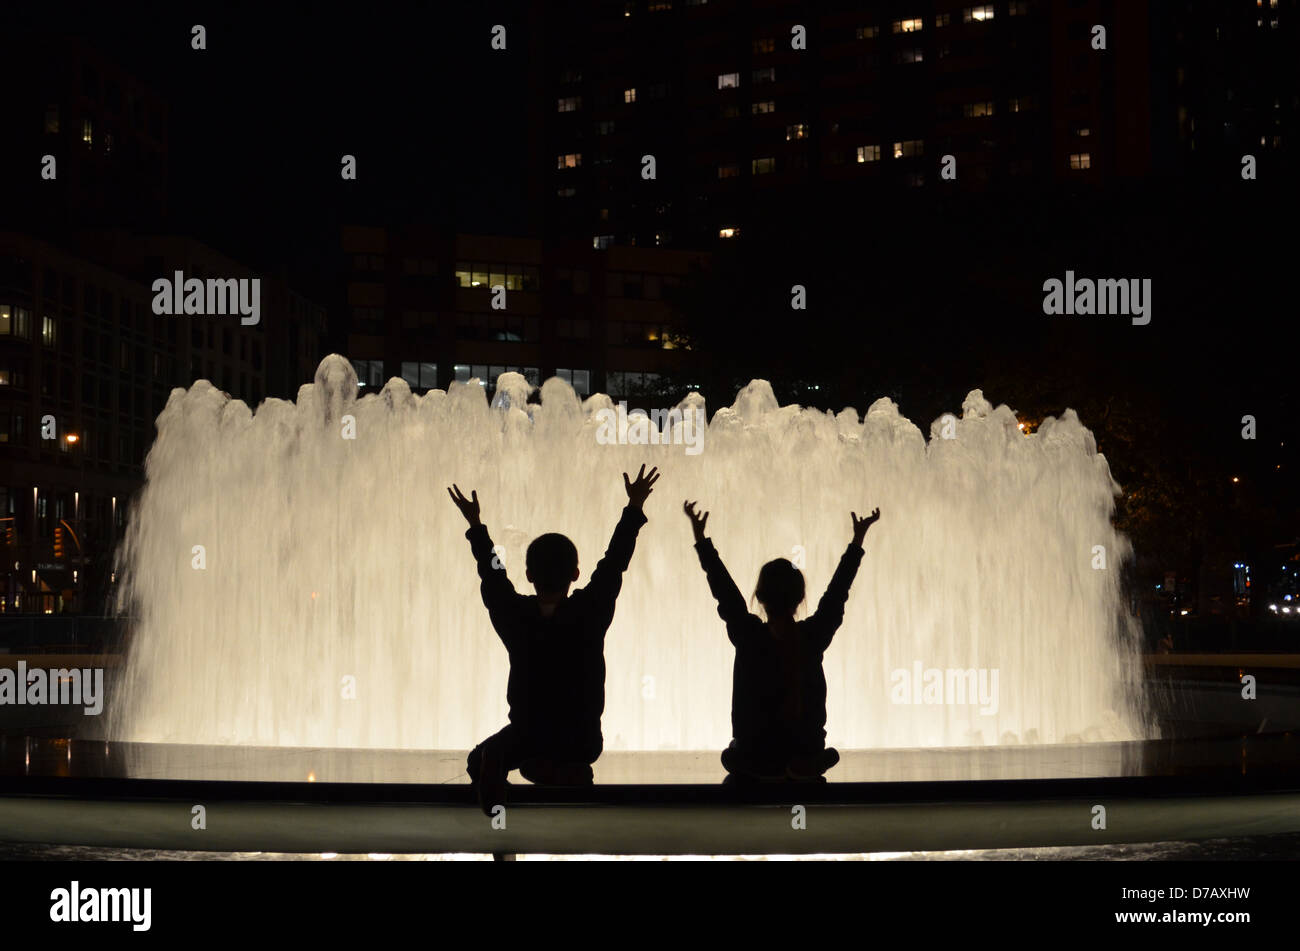 Children's silhouette at the Lincoln Center Fountain - Stock Image